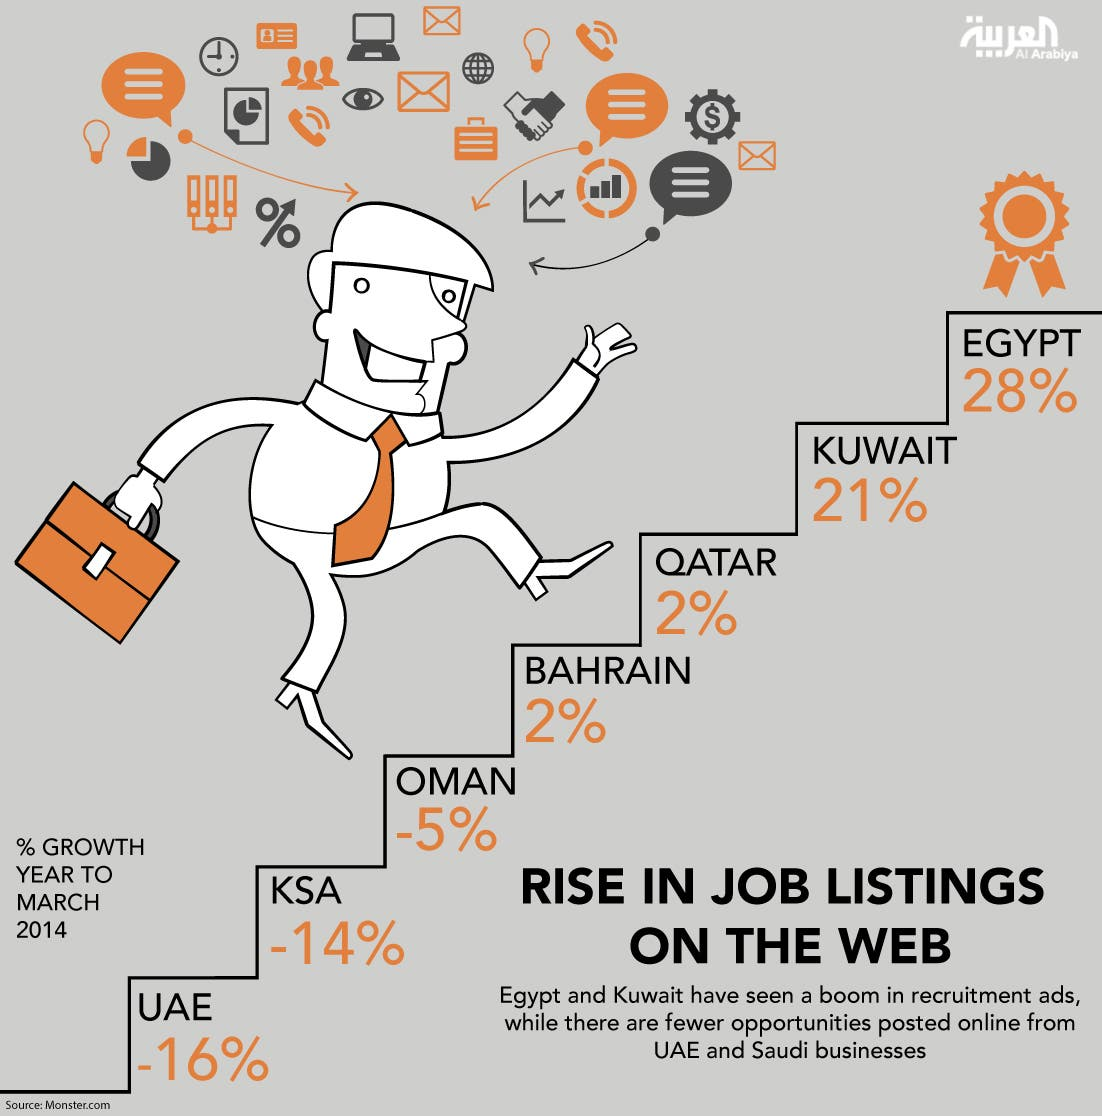 Infographic: Rise in job listings on the web